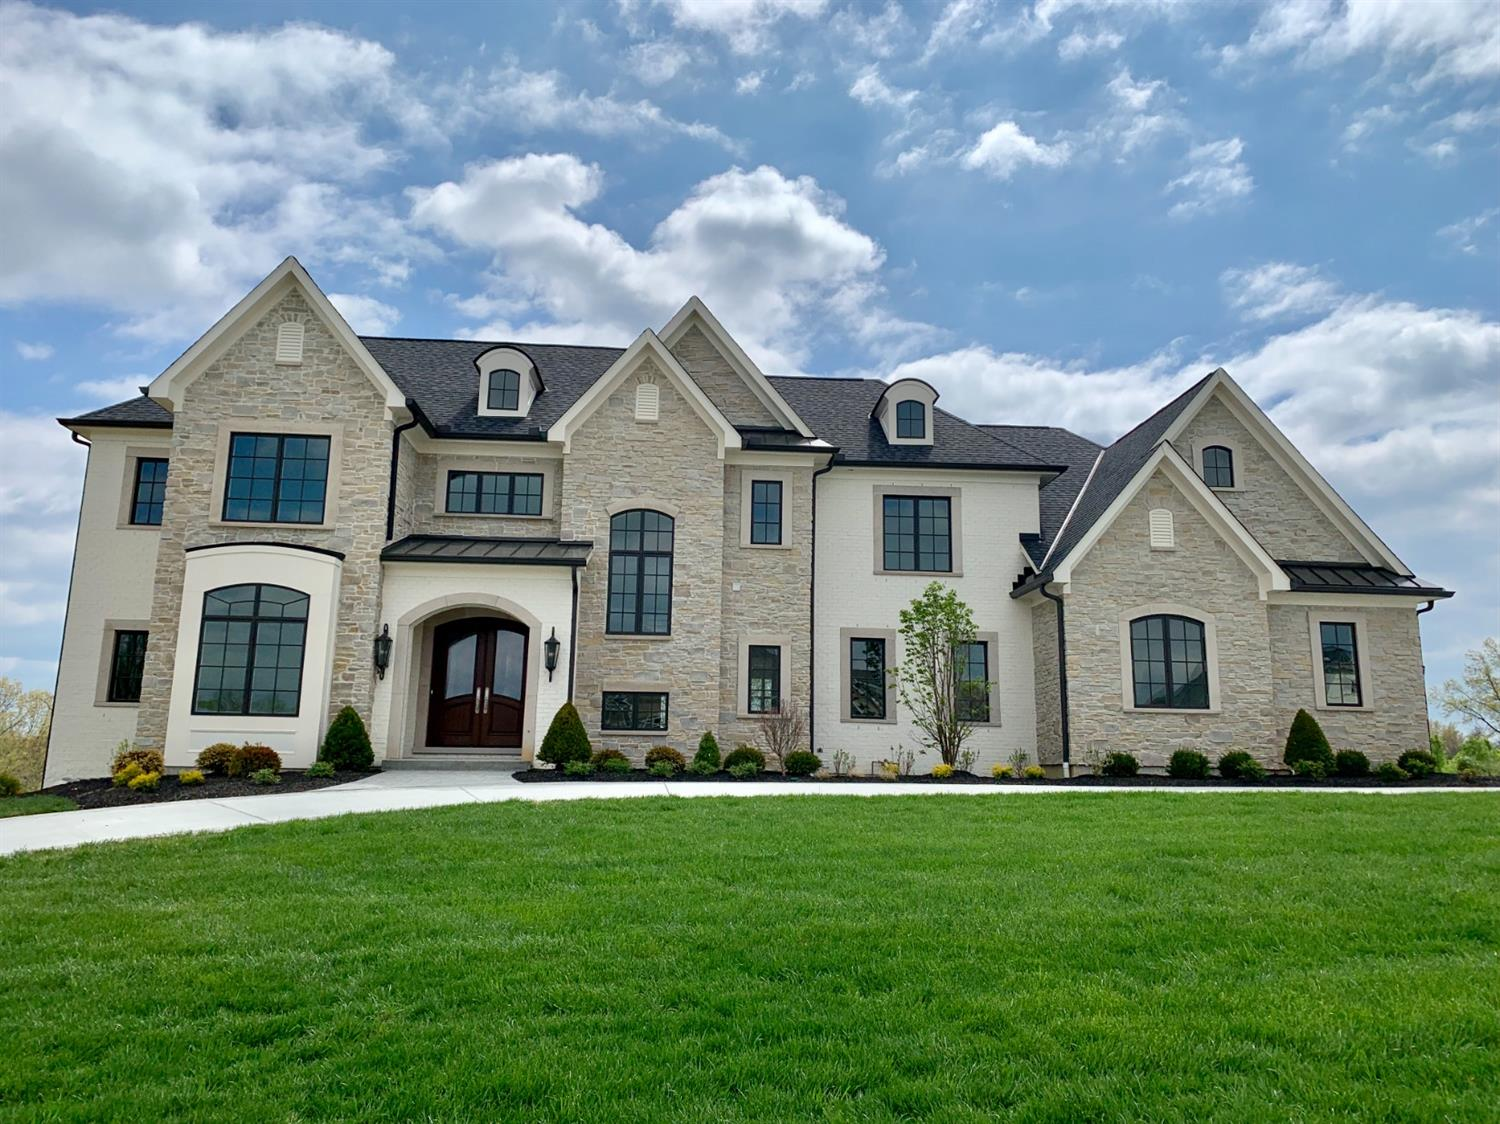 222 Coldstream Club Drive 22 Anderson Twp., OH